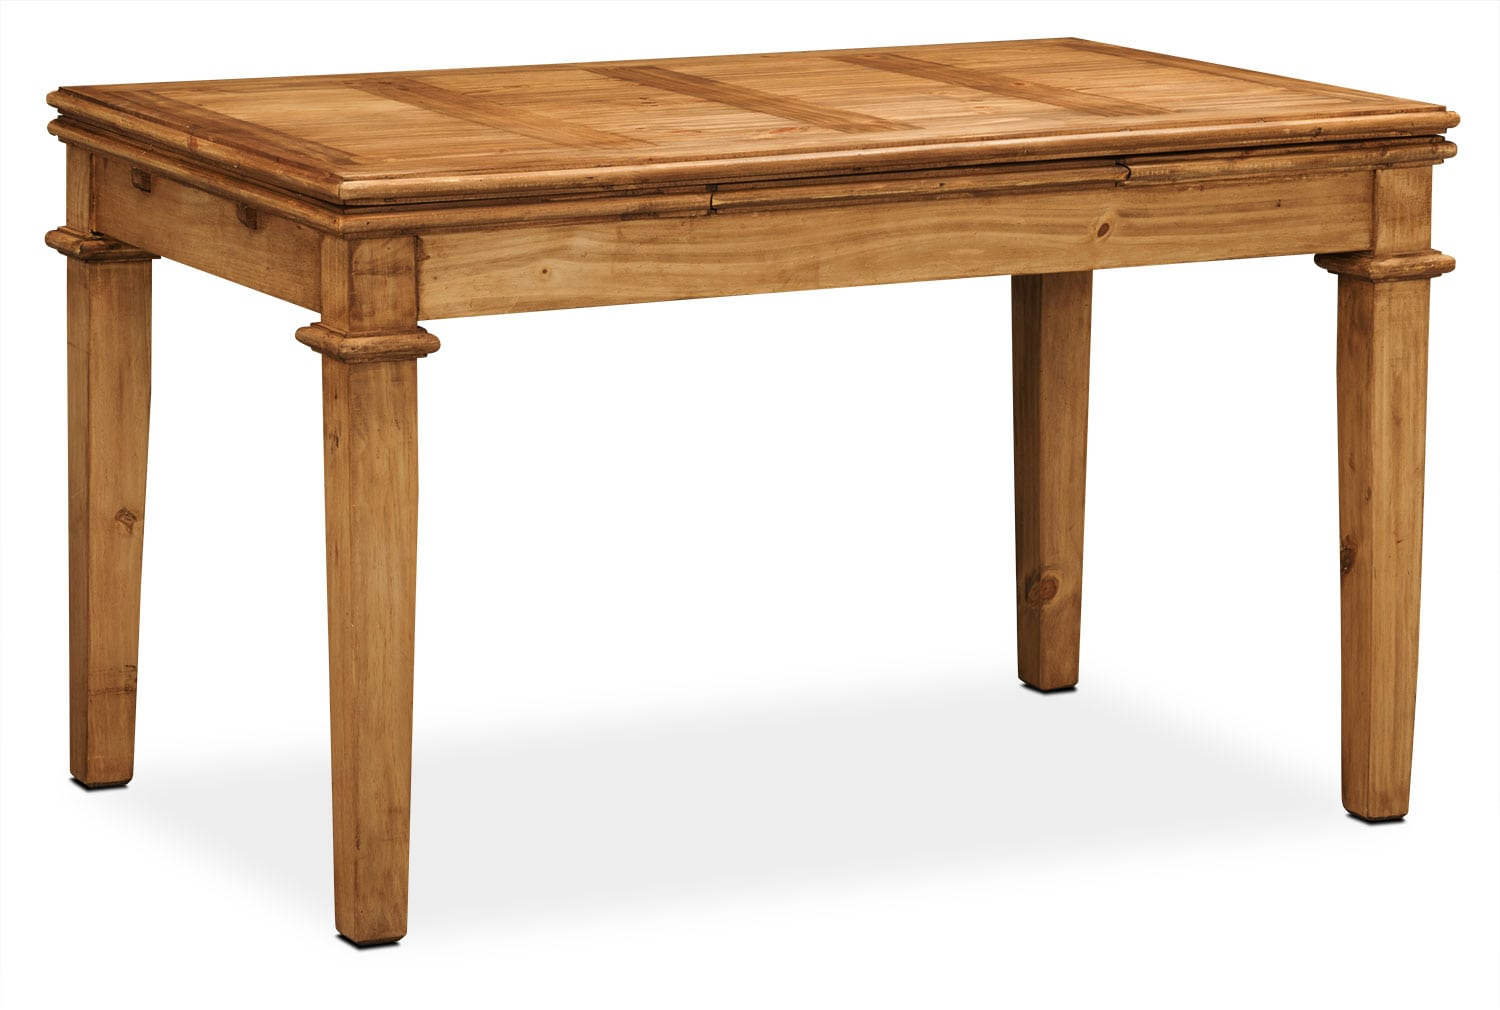 Santa fe rusticos solid pine dining table united for Pine dining room table